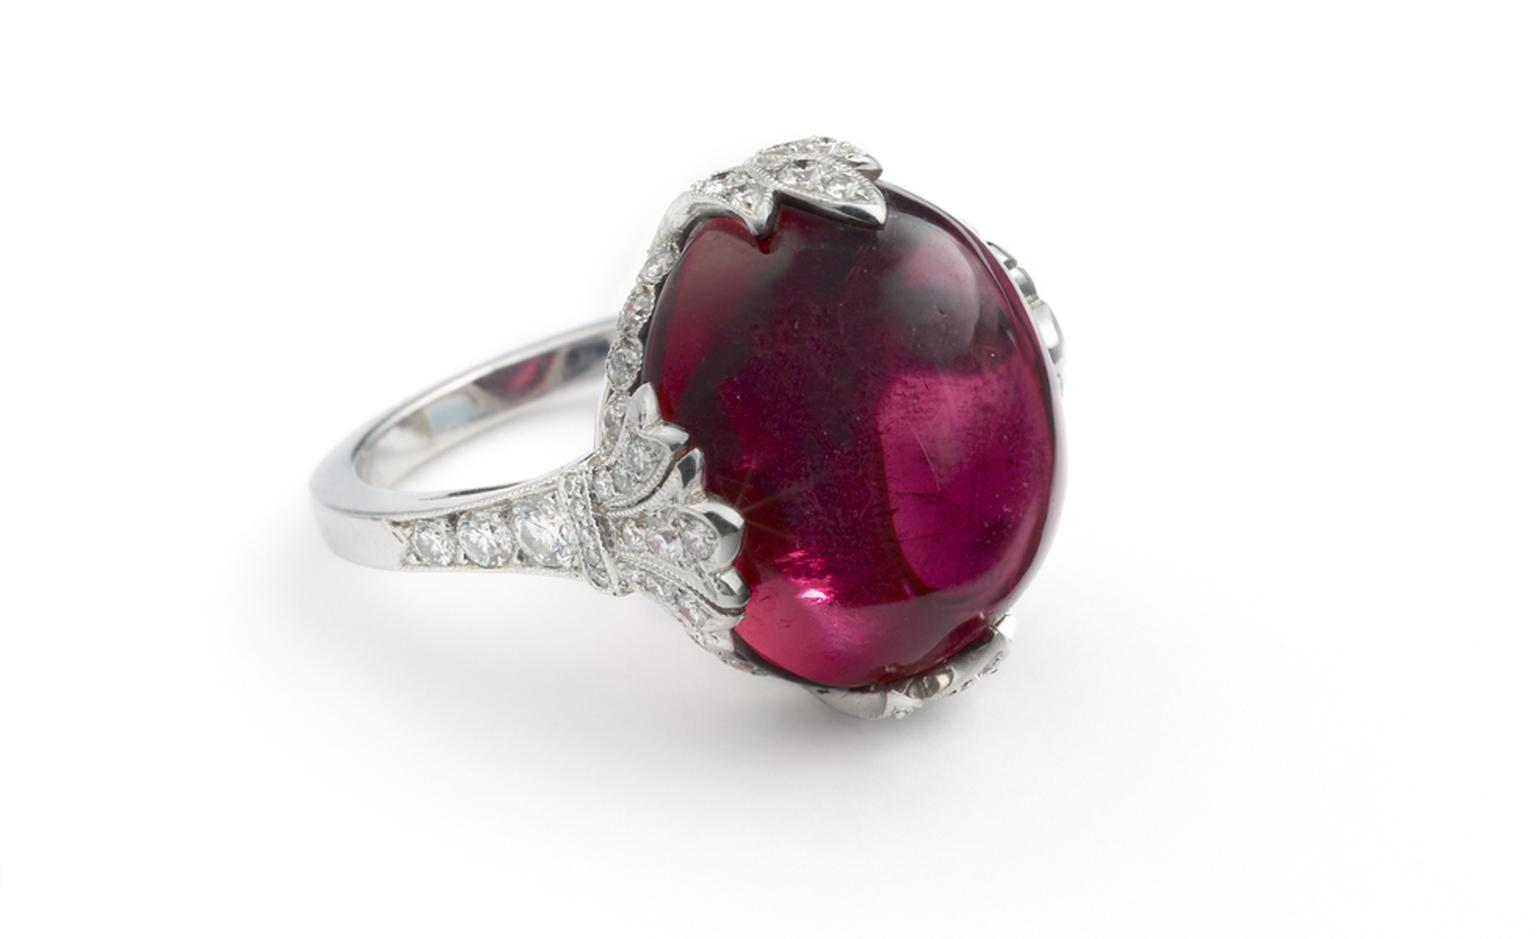 The Gem Palace of Jaipur at Harry Fane, rubellite ring. £21,700.00